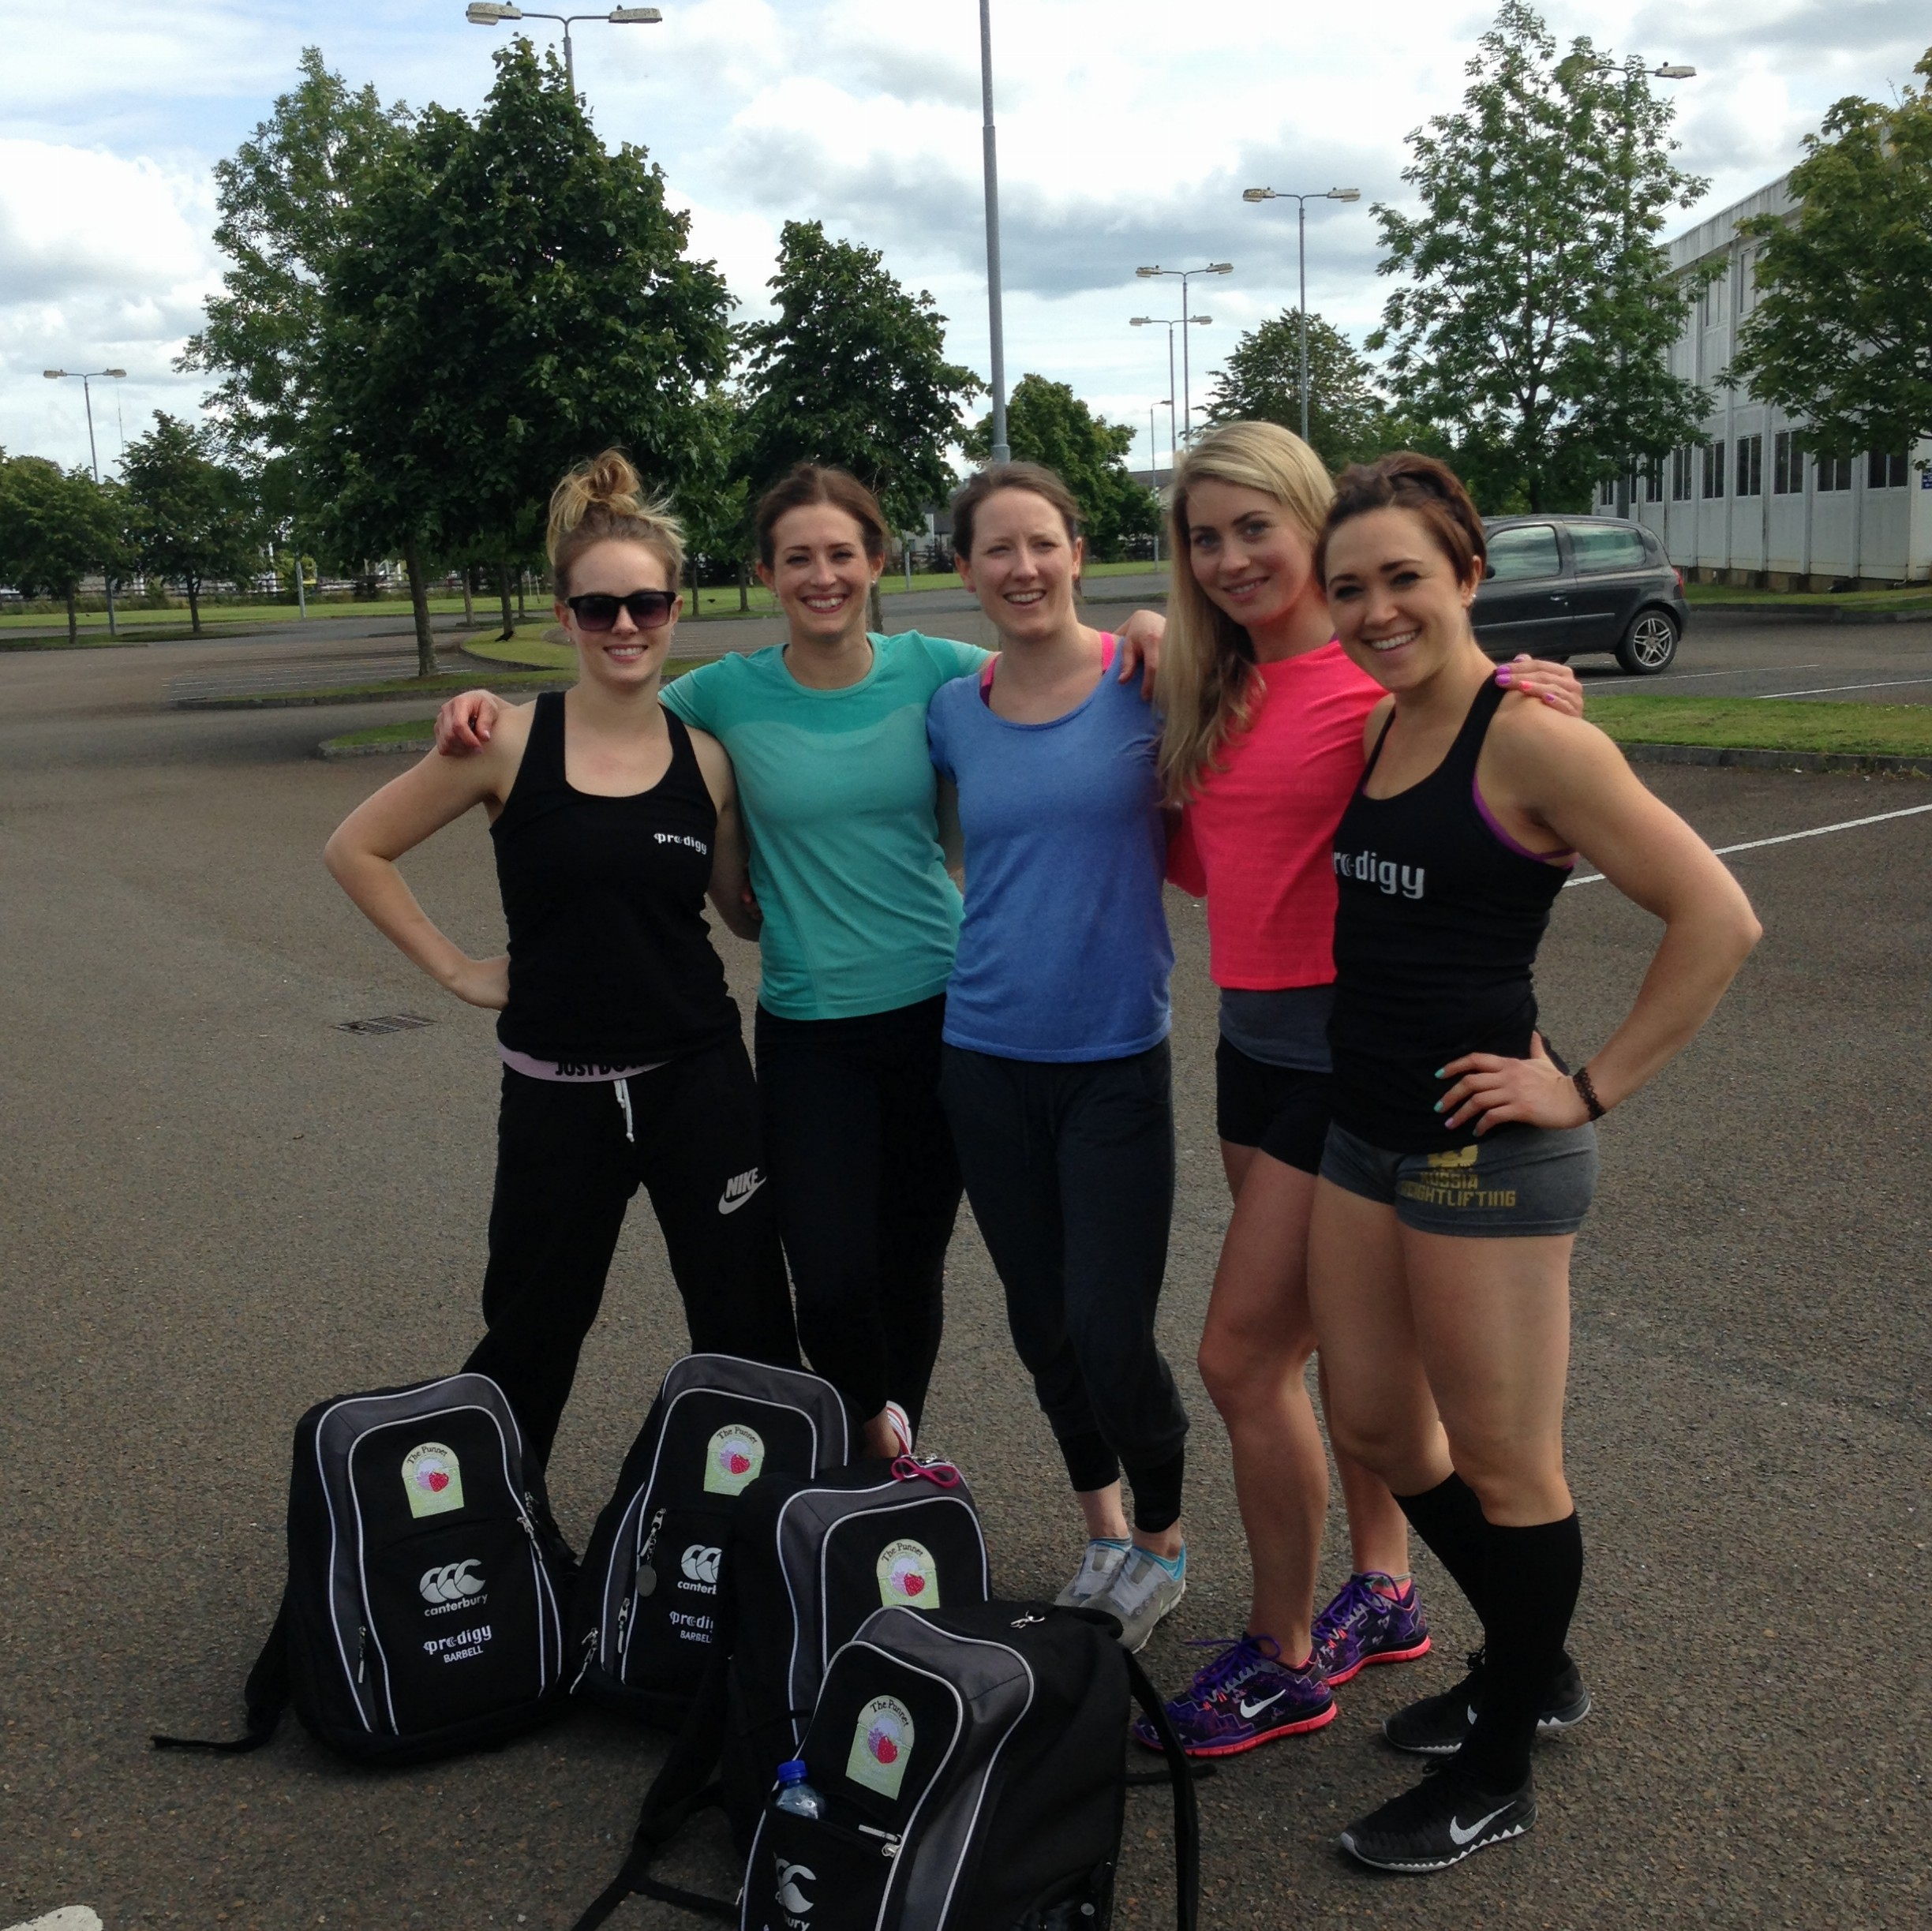 The Gurrrrls My team was myself and my besties, Katey Byrd, Aoife MacNeill  and Emma Dowling. We were happy(ish) with our lifts (we're never fully  satisfied) ...